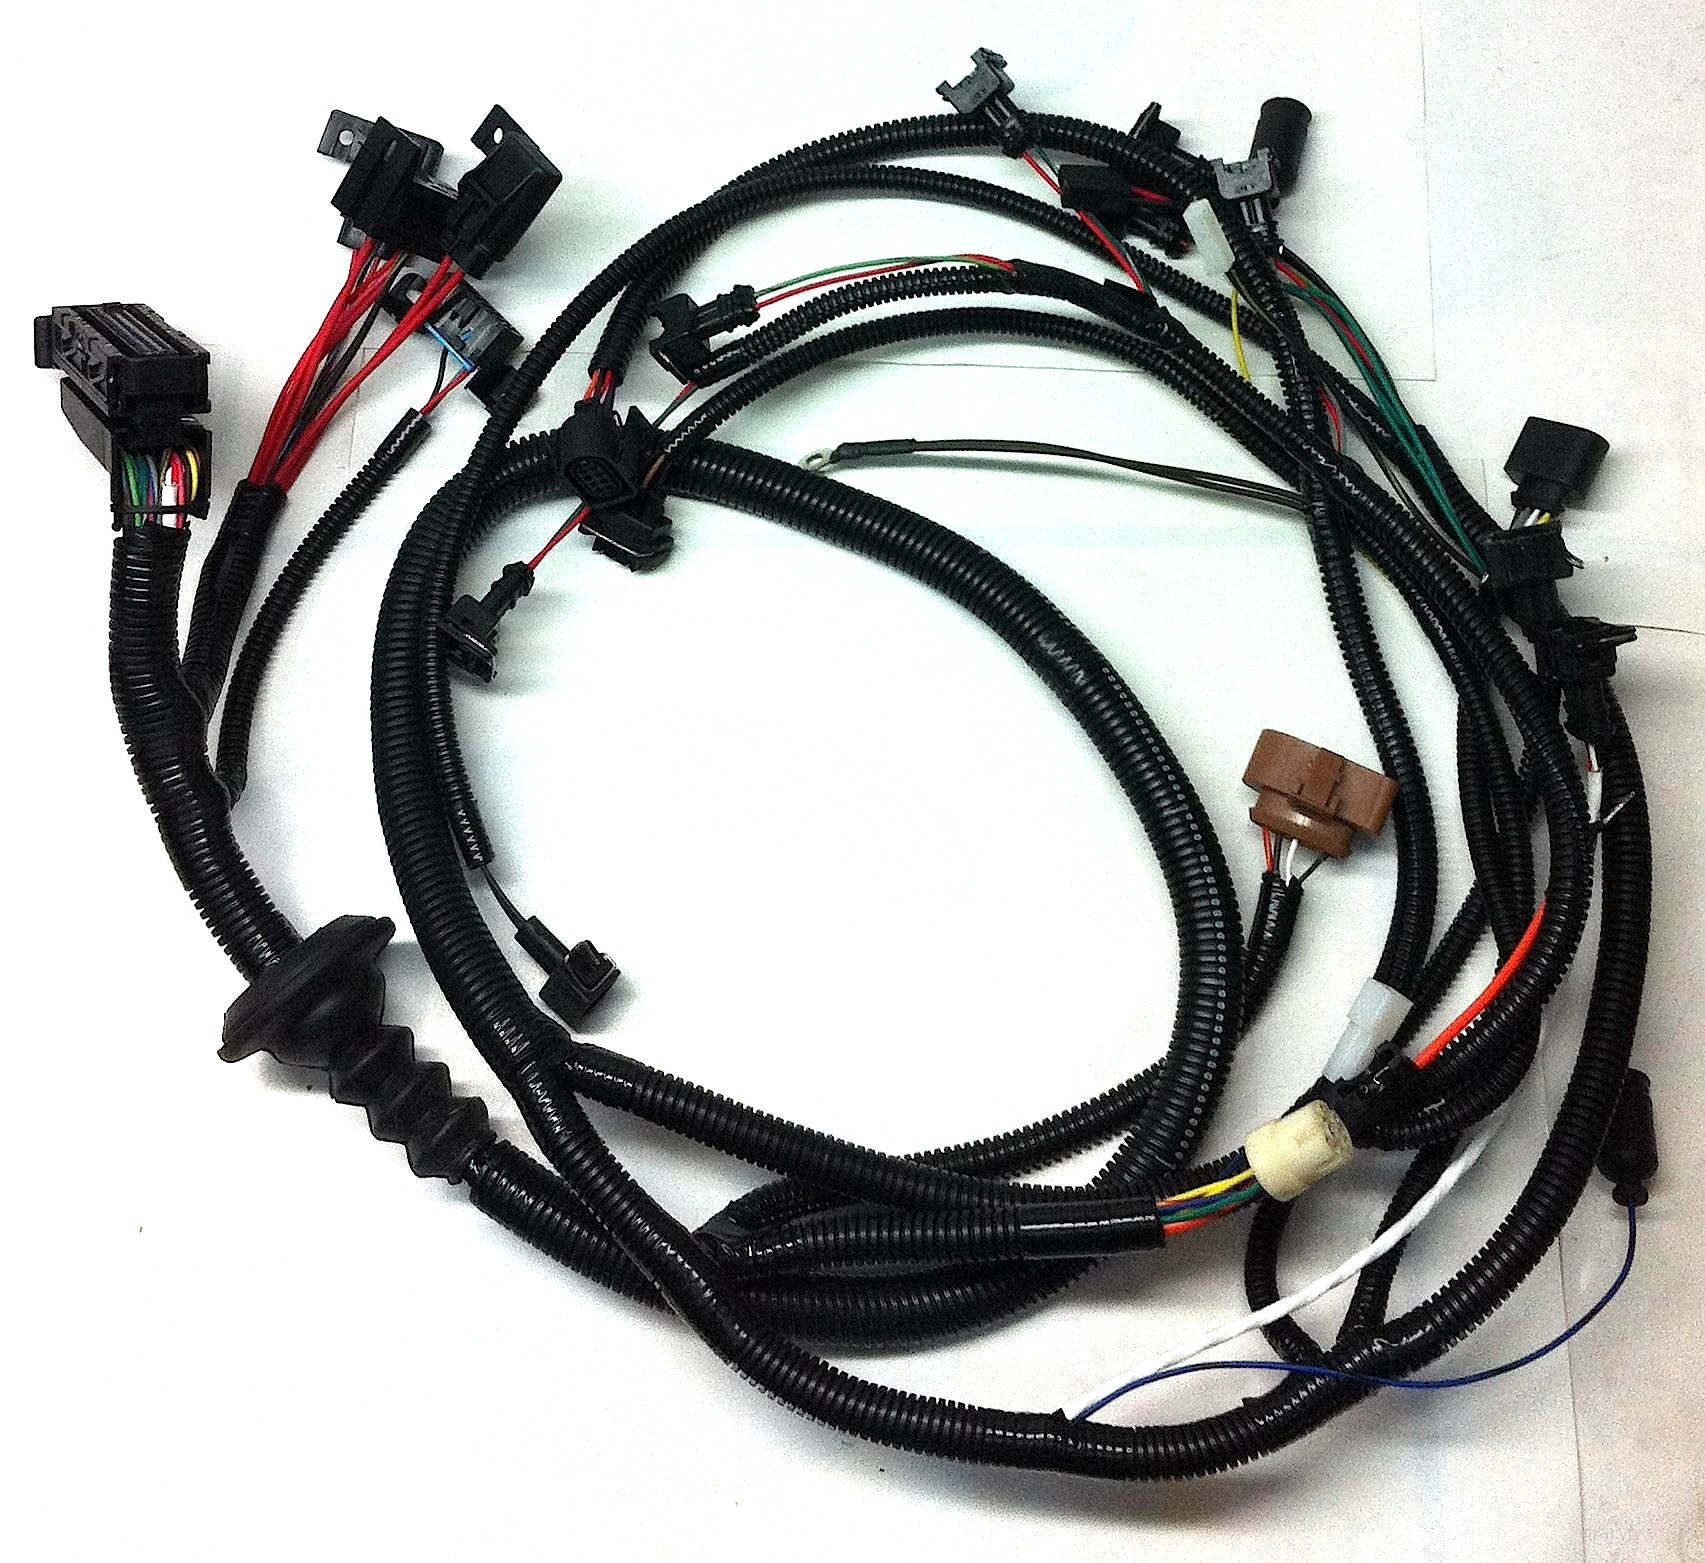 Wiring_Harness_2LR 2lr tiico conversion wiring harness foreign auto & supply, inc  at gsmx.co